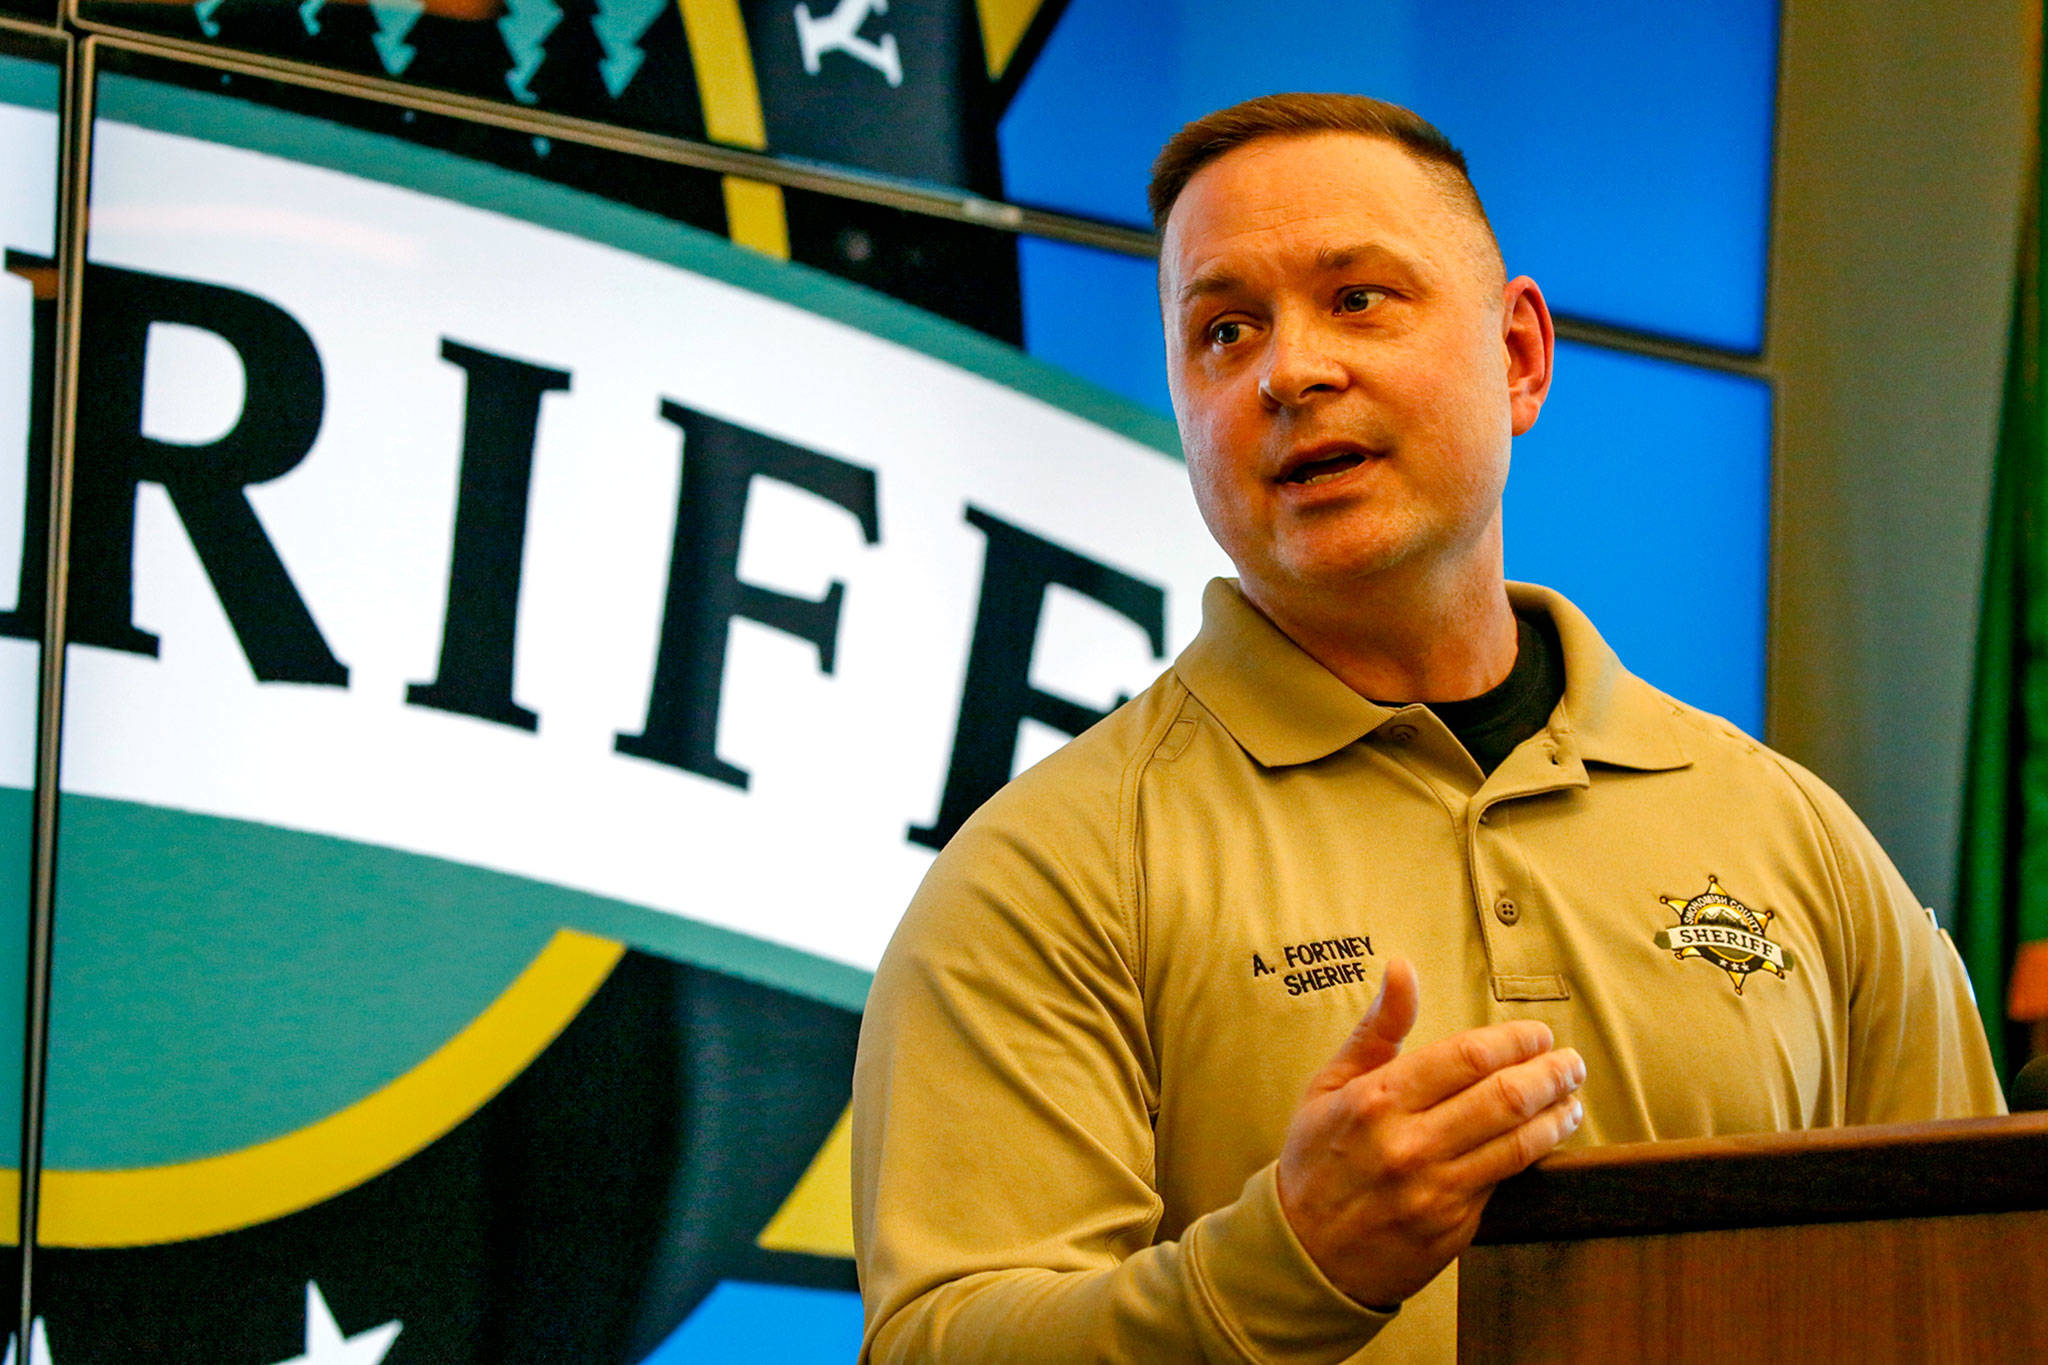 Sheriff Adam Fortney at a news conference April 22 in Everett. (Kevin Clark / The Herald)